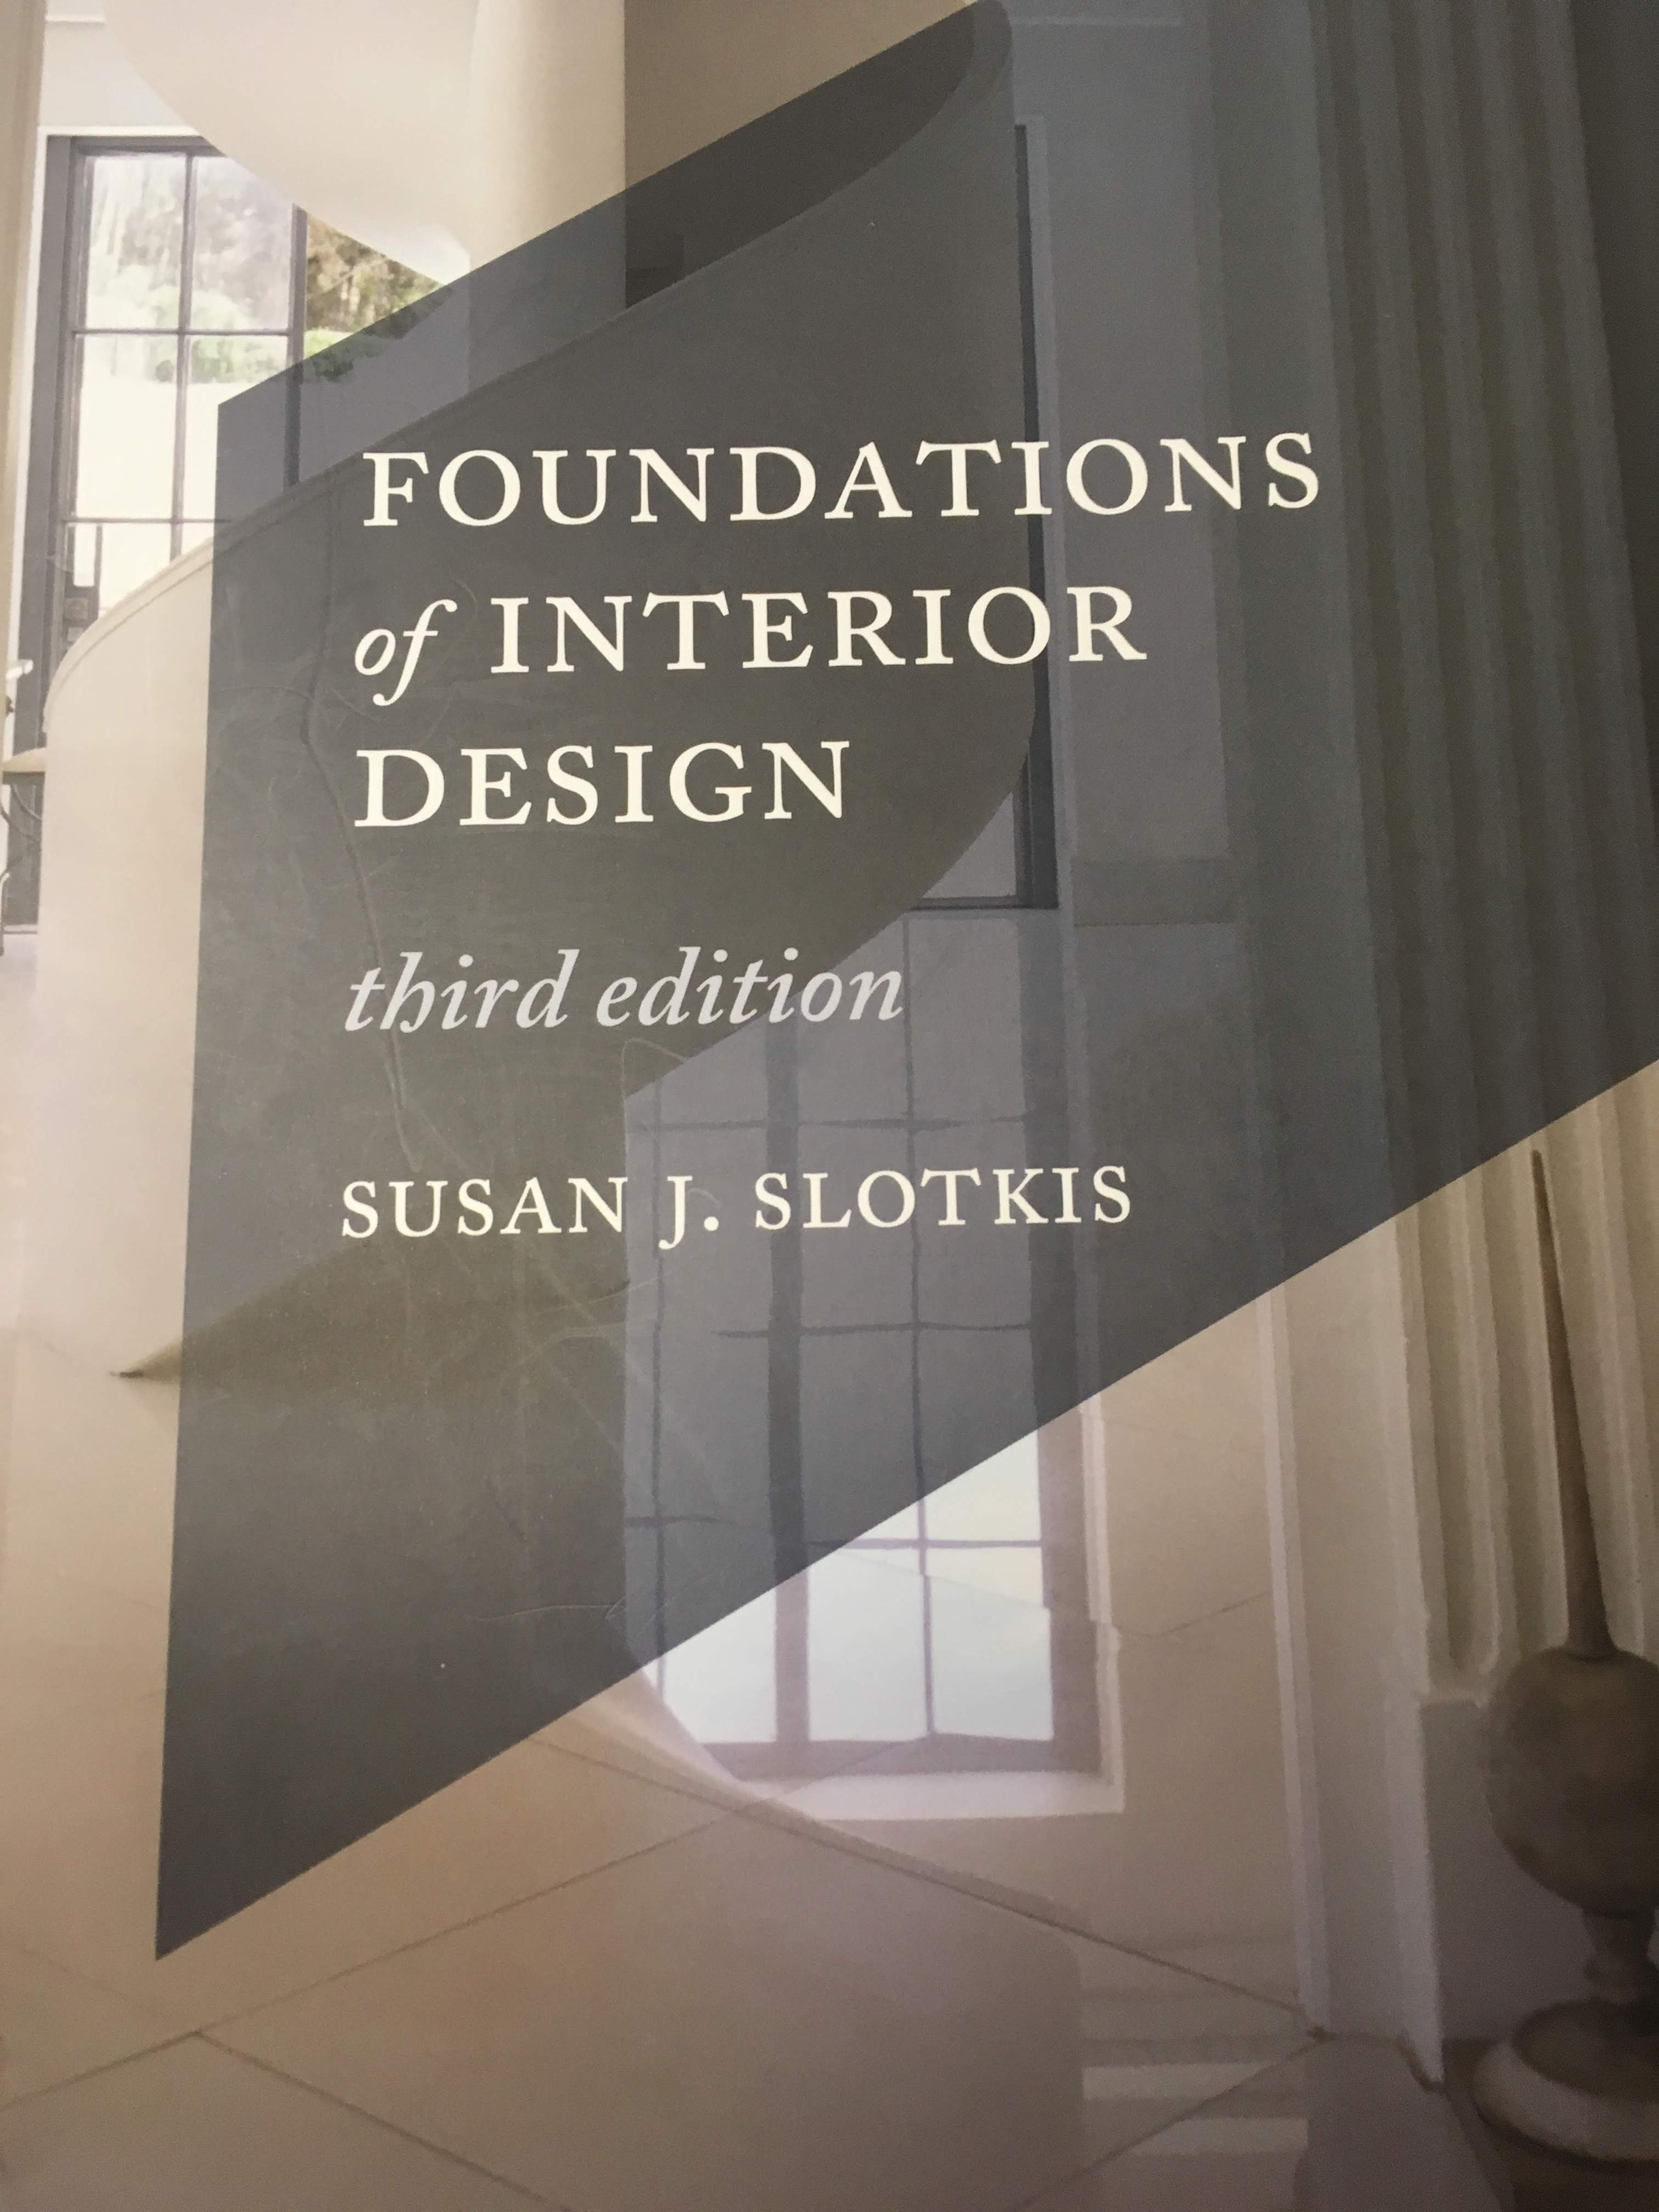 Foundations Of Interior Design 3rd Edition Offers A Thorough